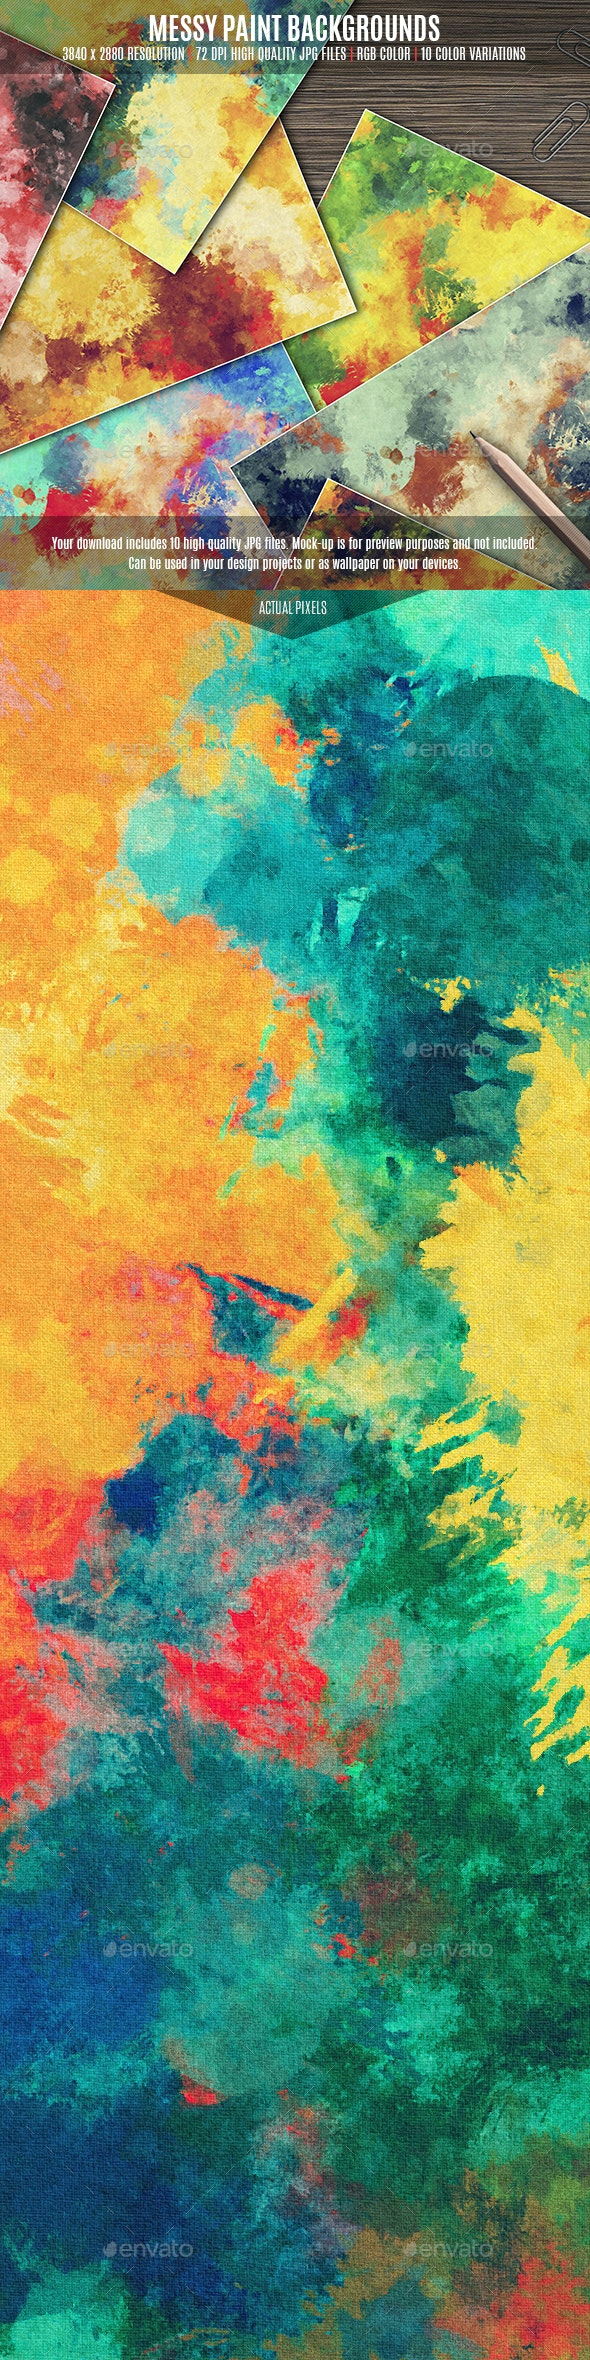 Messy Paint Backgrounds - Backgrounds Graphics